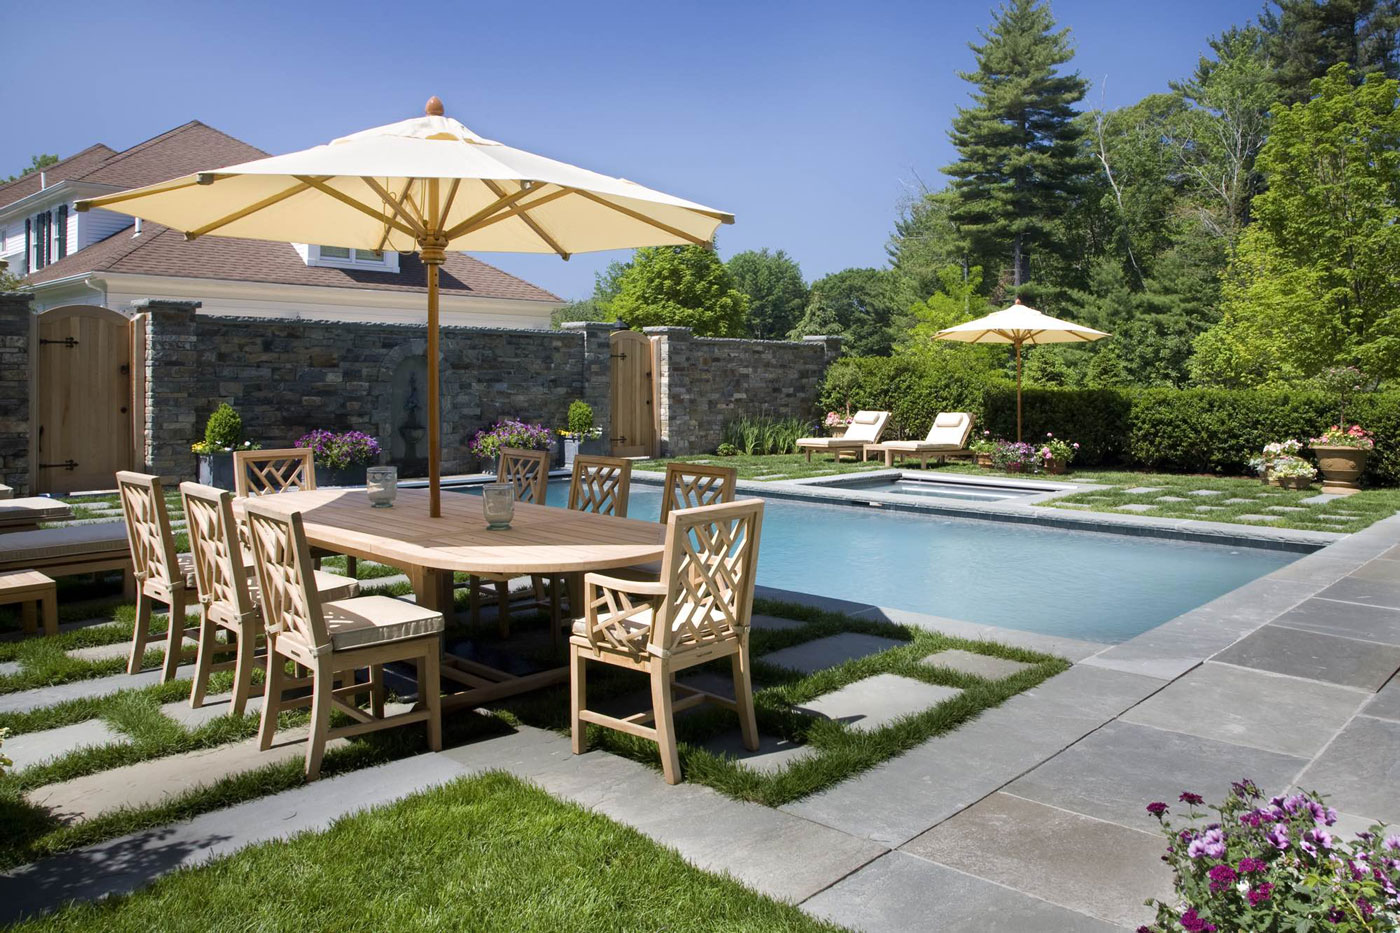 Pool with outdoor dining table and lounge chairs